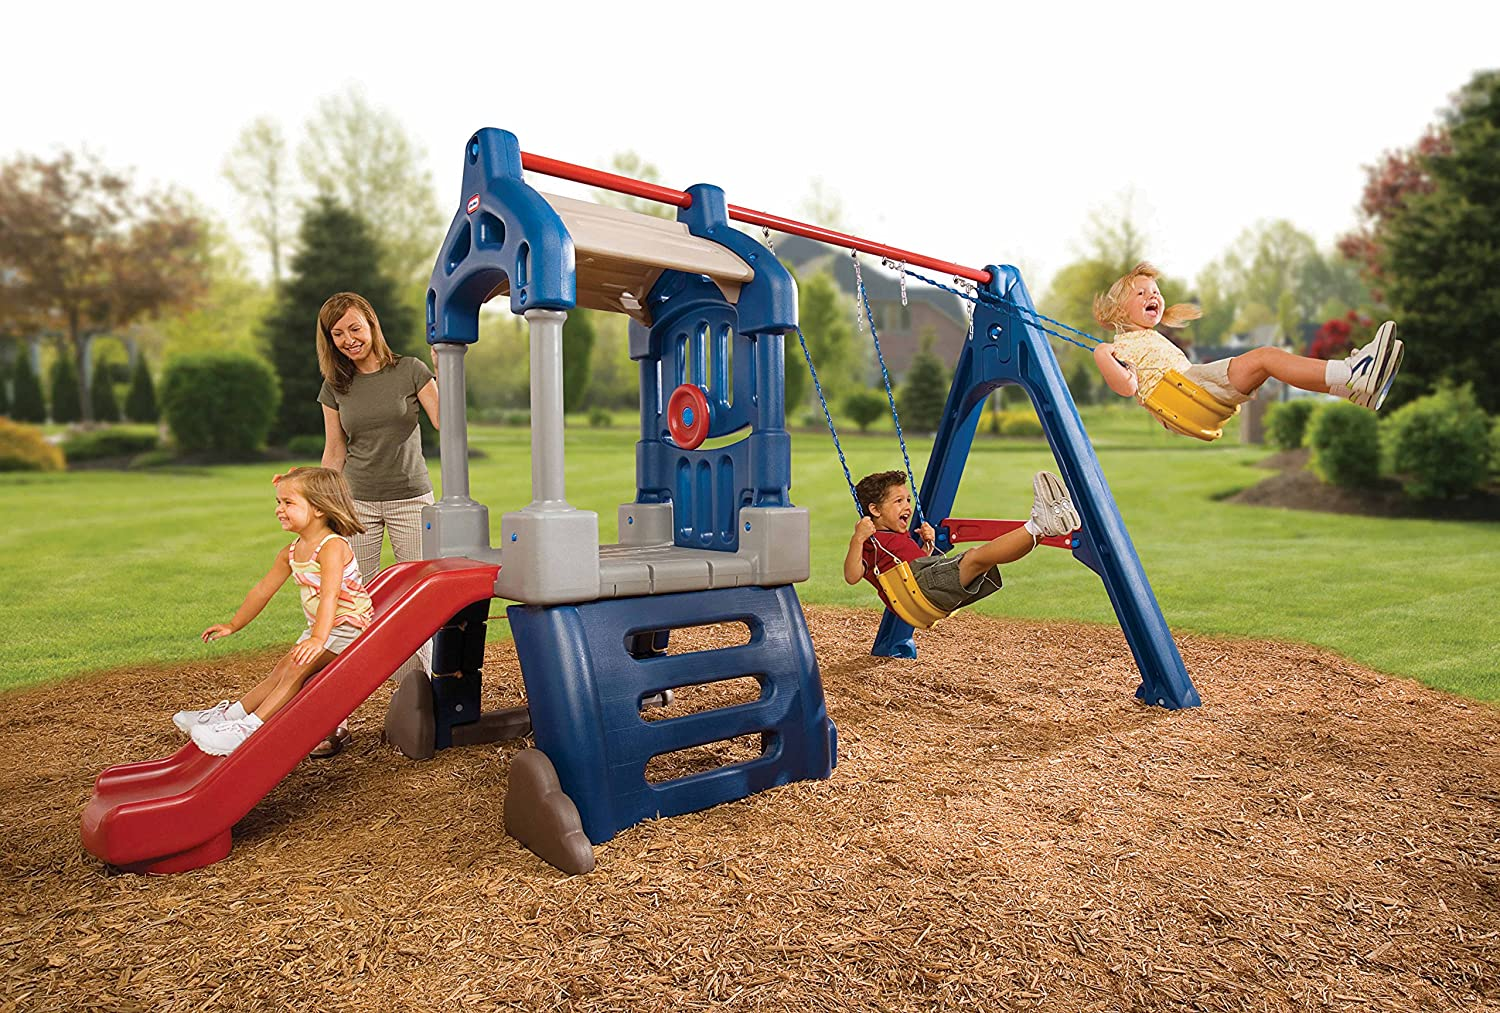 An Image of Little Tikes Clubhouse Swing Set